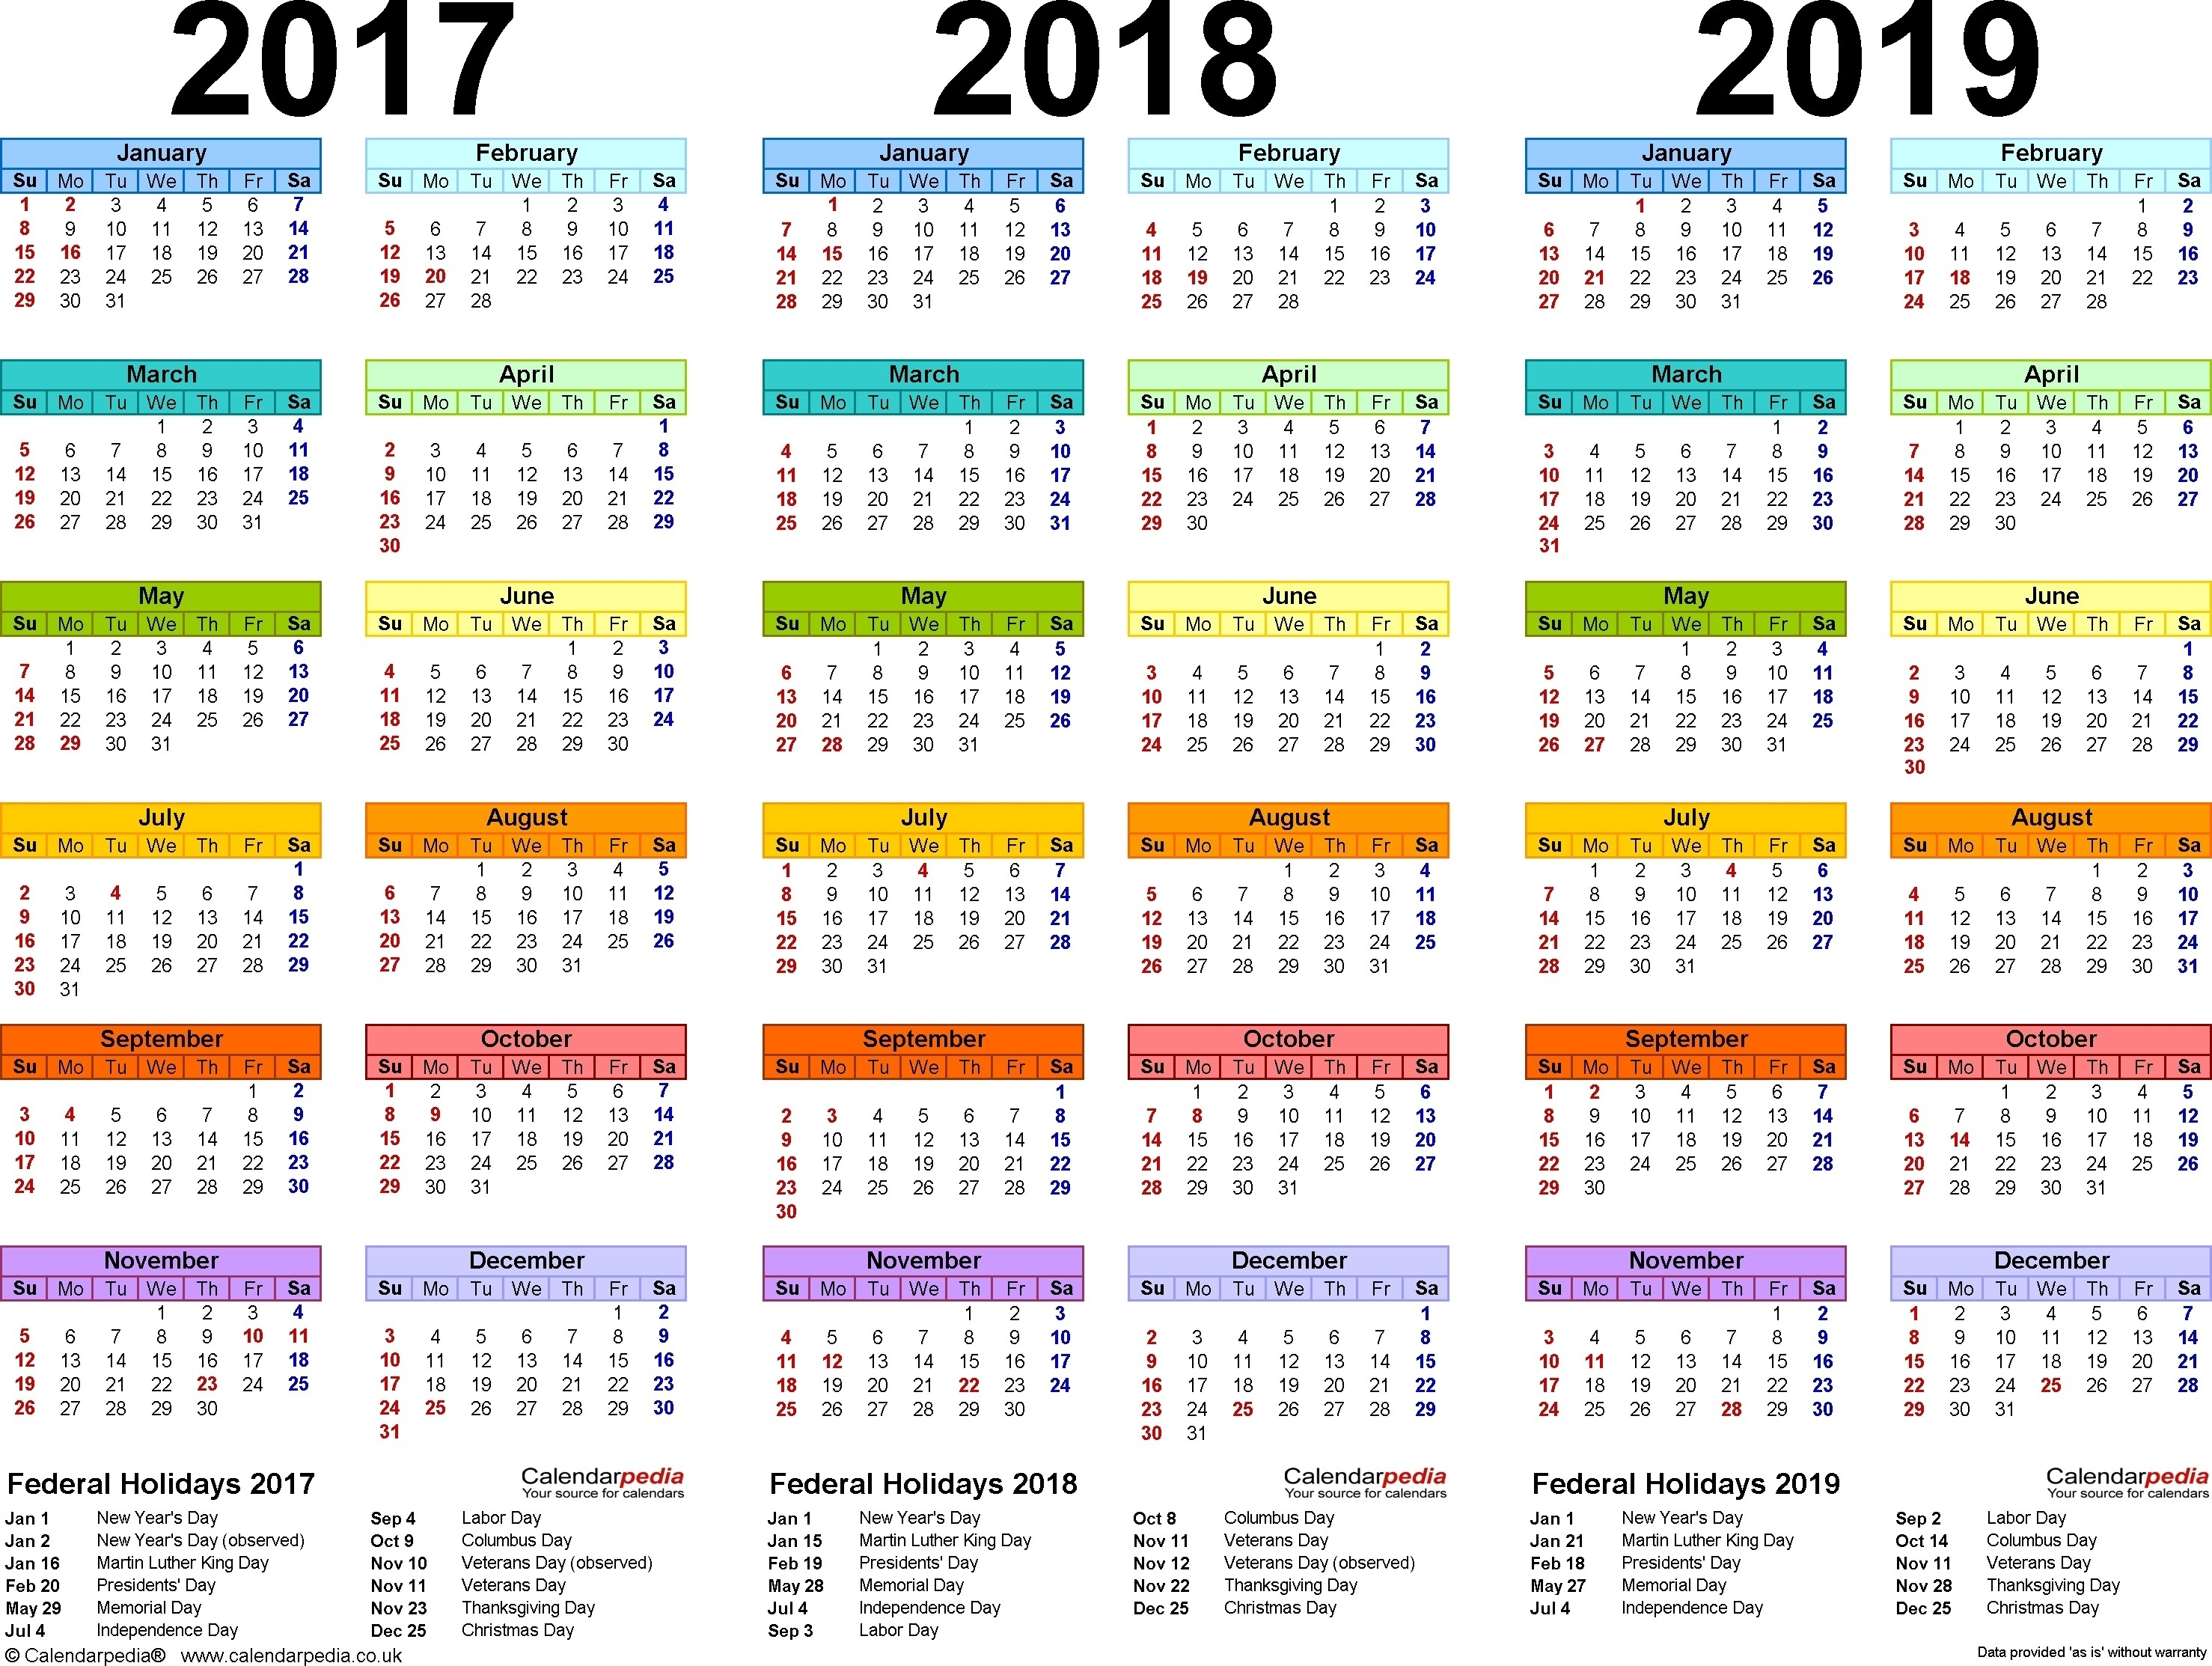 Depo Schedule Chart - Tart.tscoreks pertaining to Depo Provera Calculator 2020